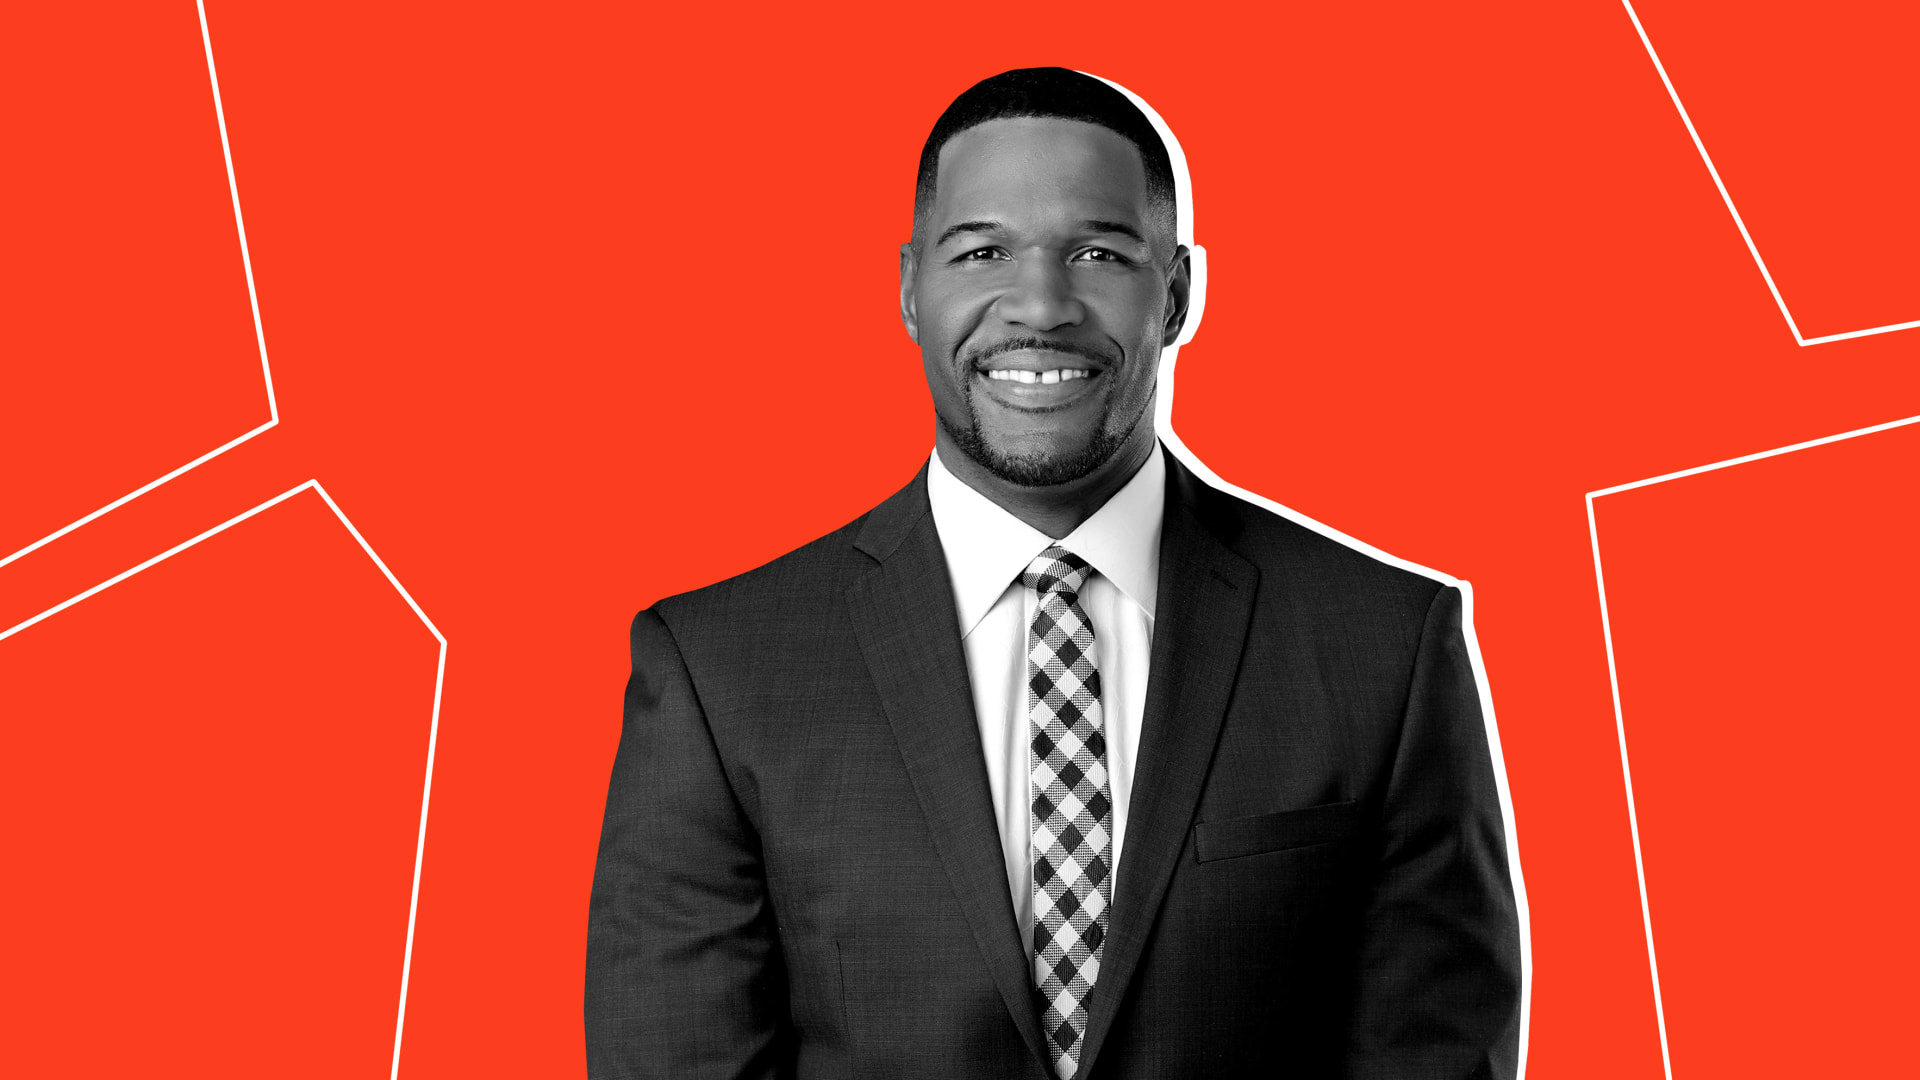 Sign Up Now: Michael Strahan on Inspirational Leadership at the Inc. 5000 Vision Conference